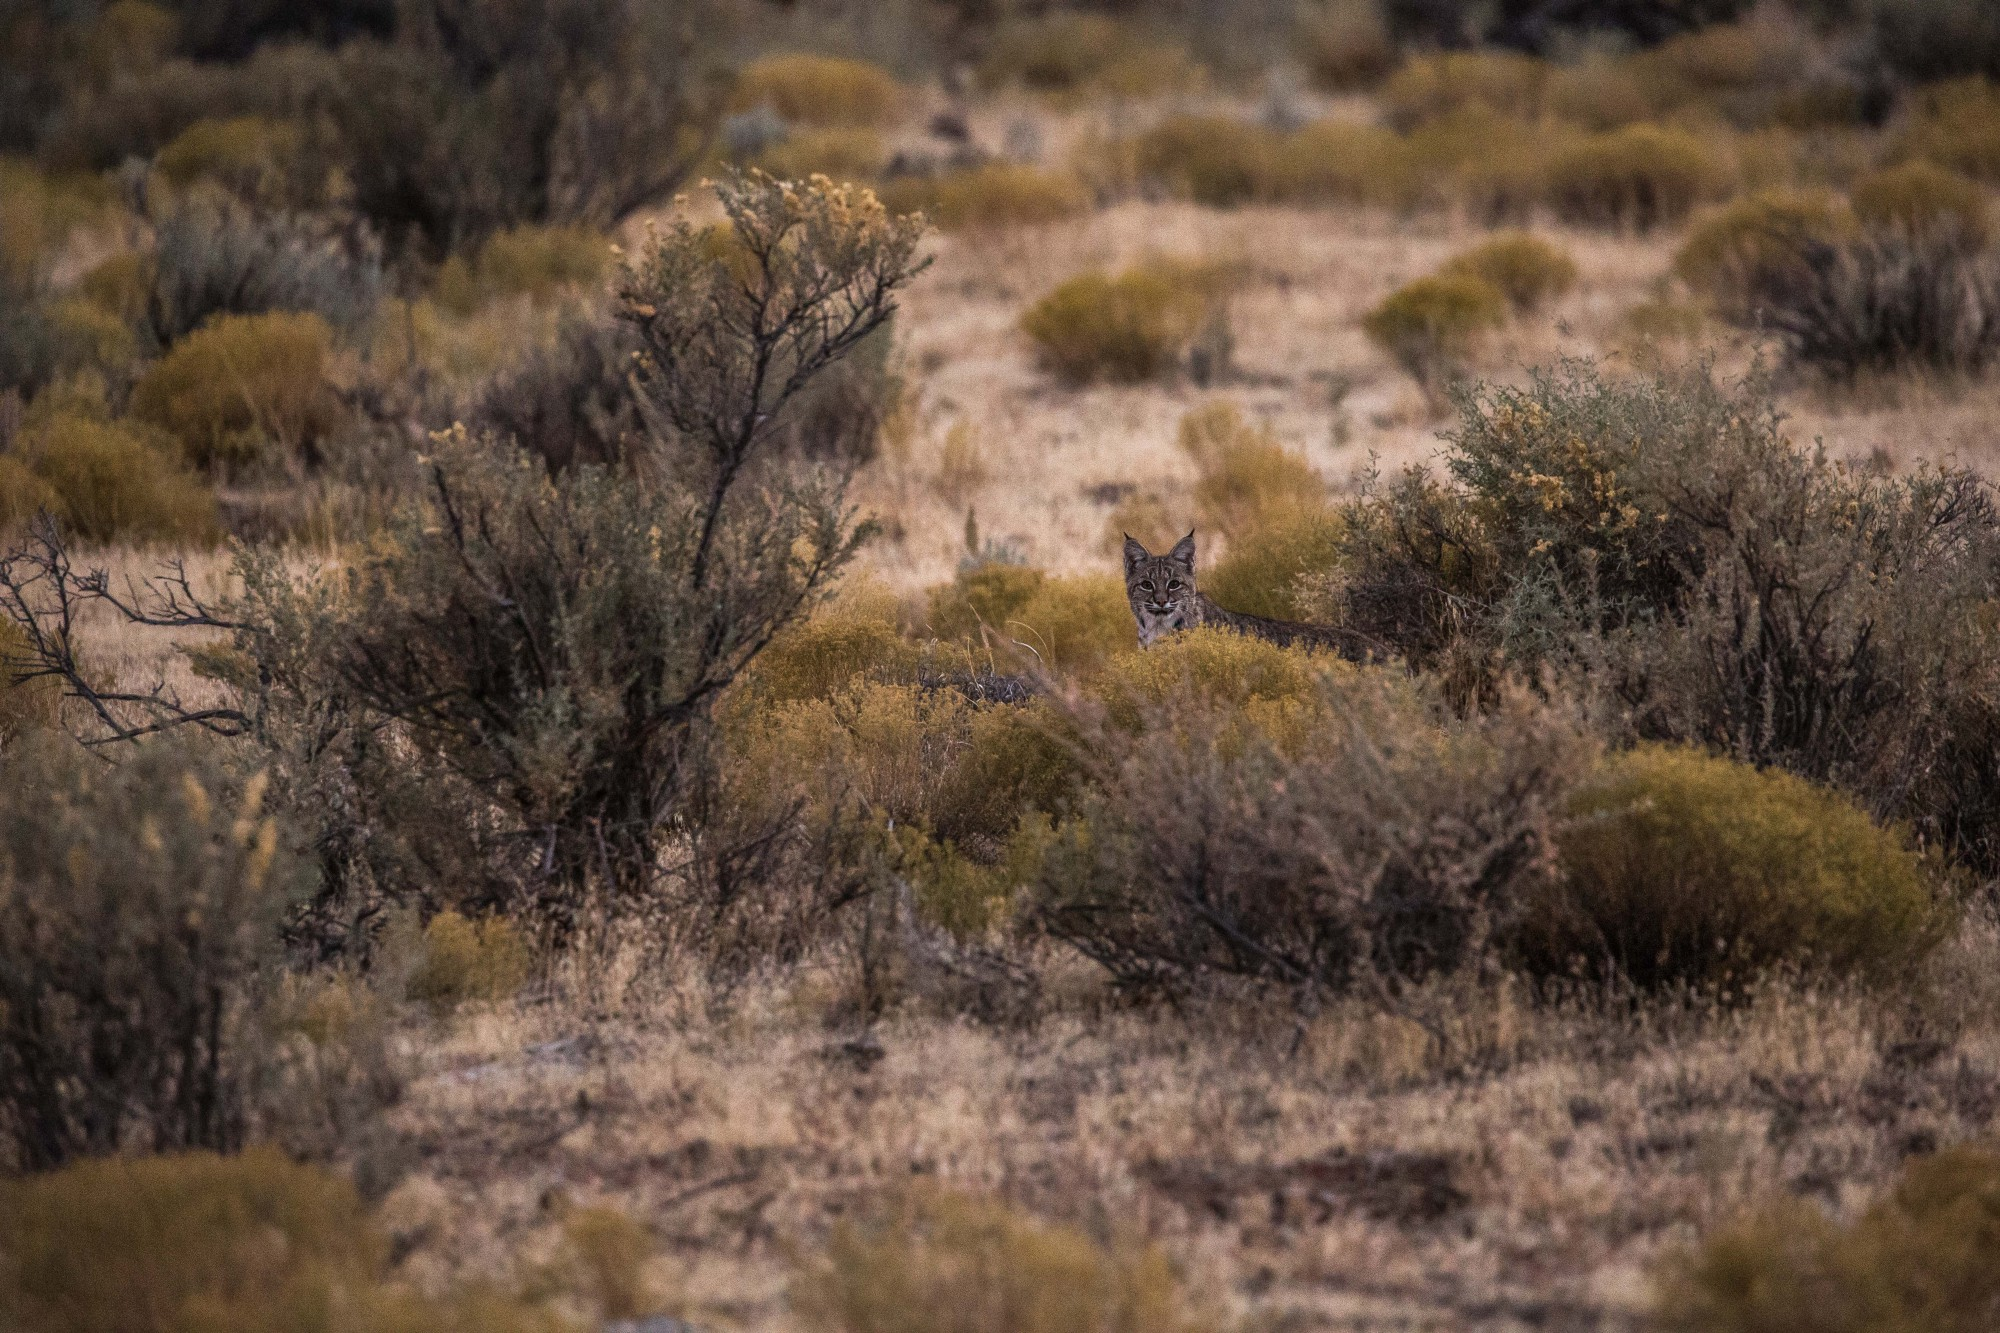 - A bobcat after sunset right below the Straight Cliffs formation, at the eastern edge of the Kaiparowits Plateau.